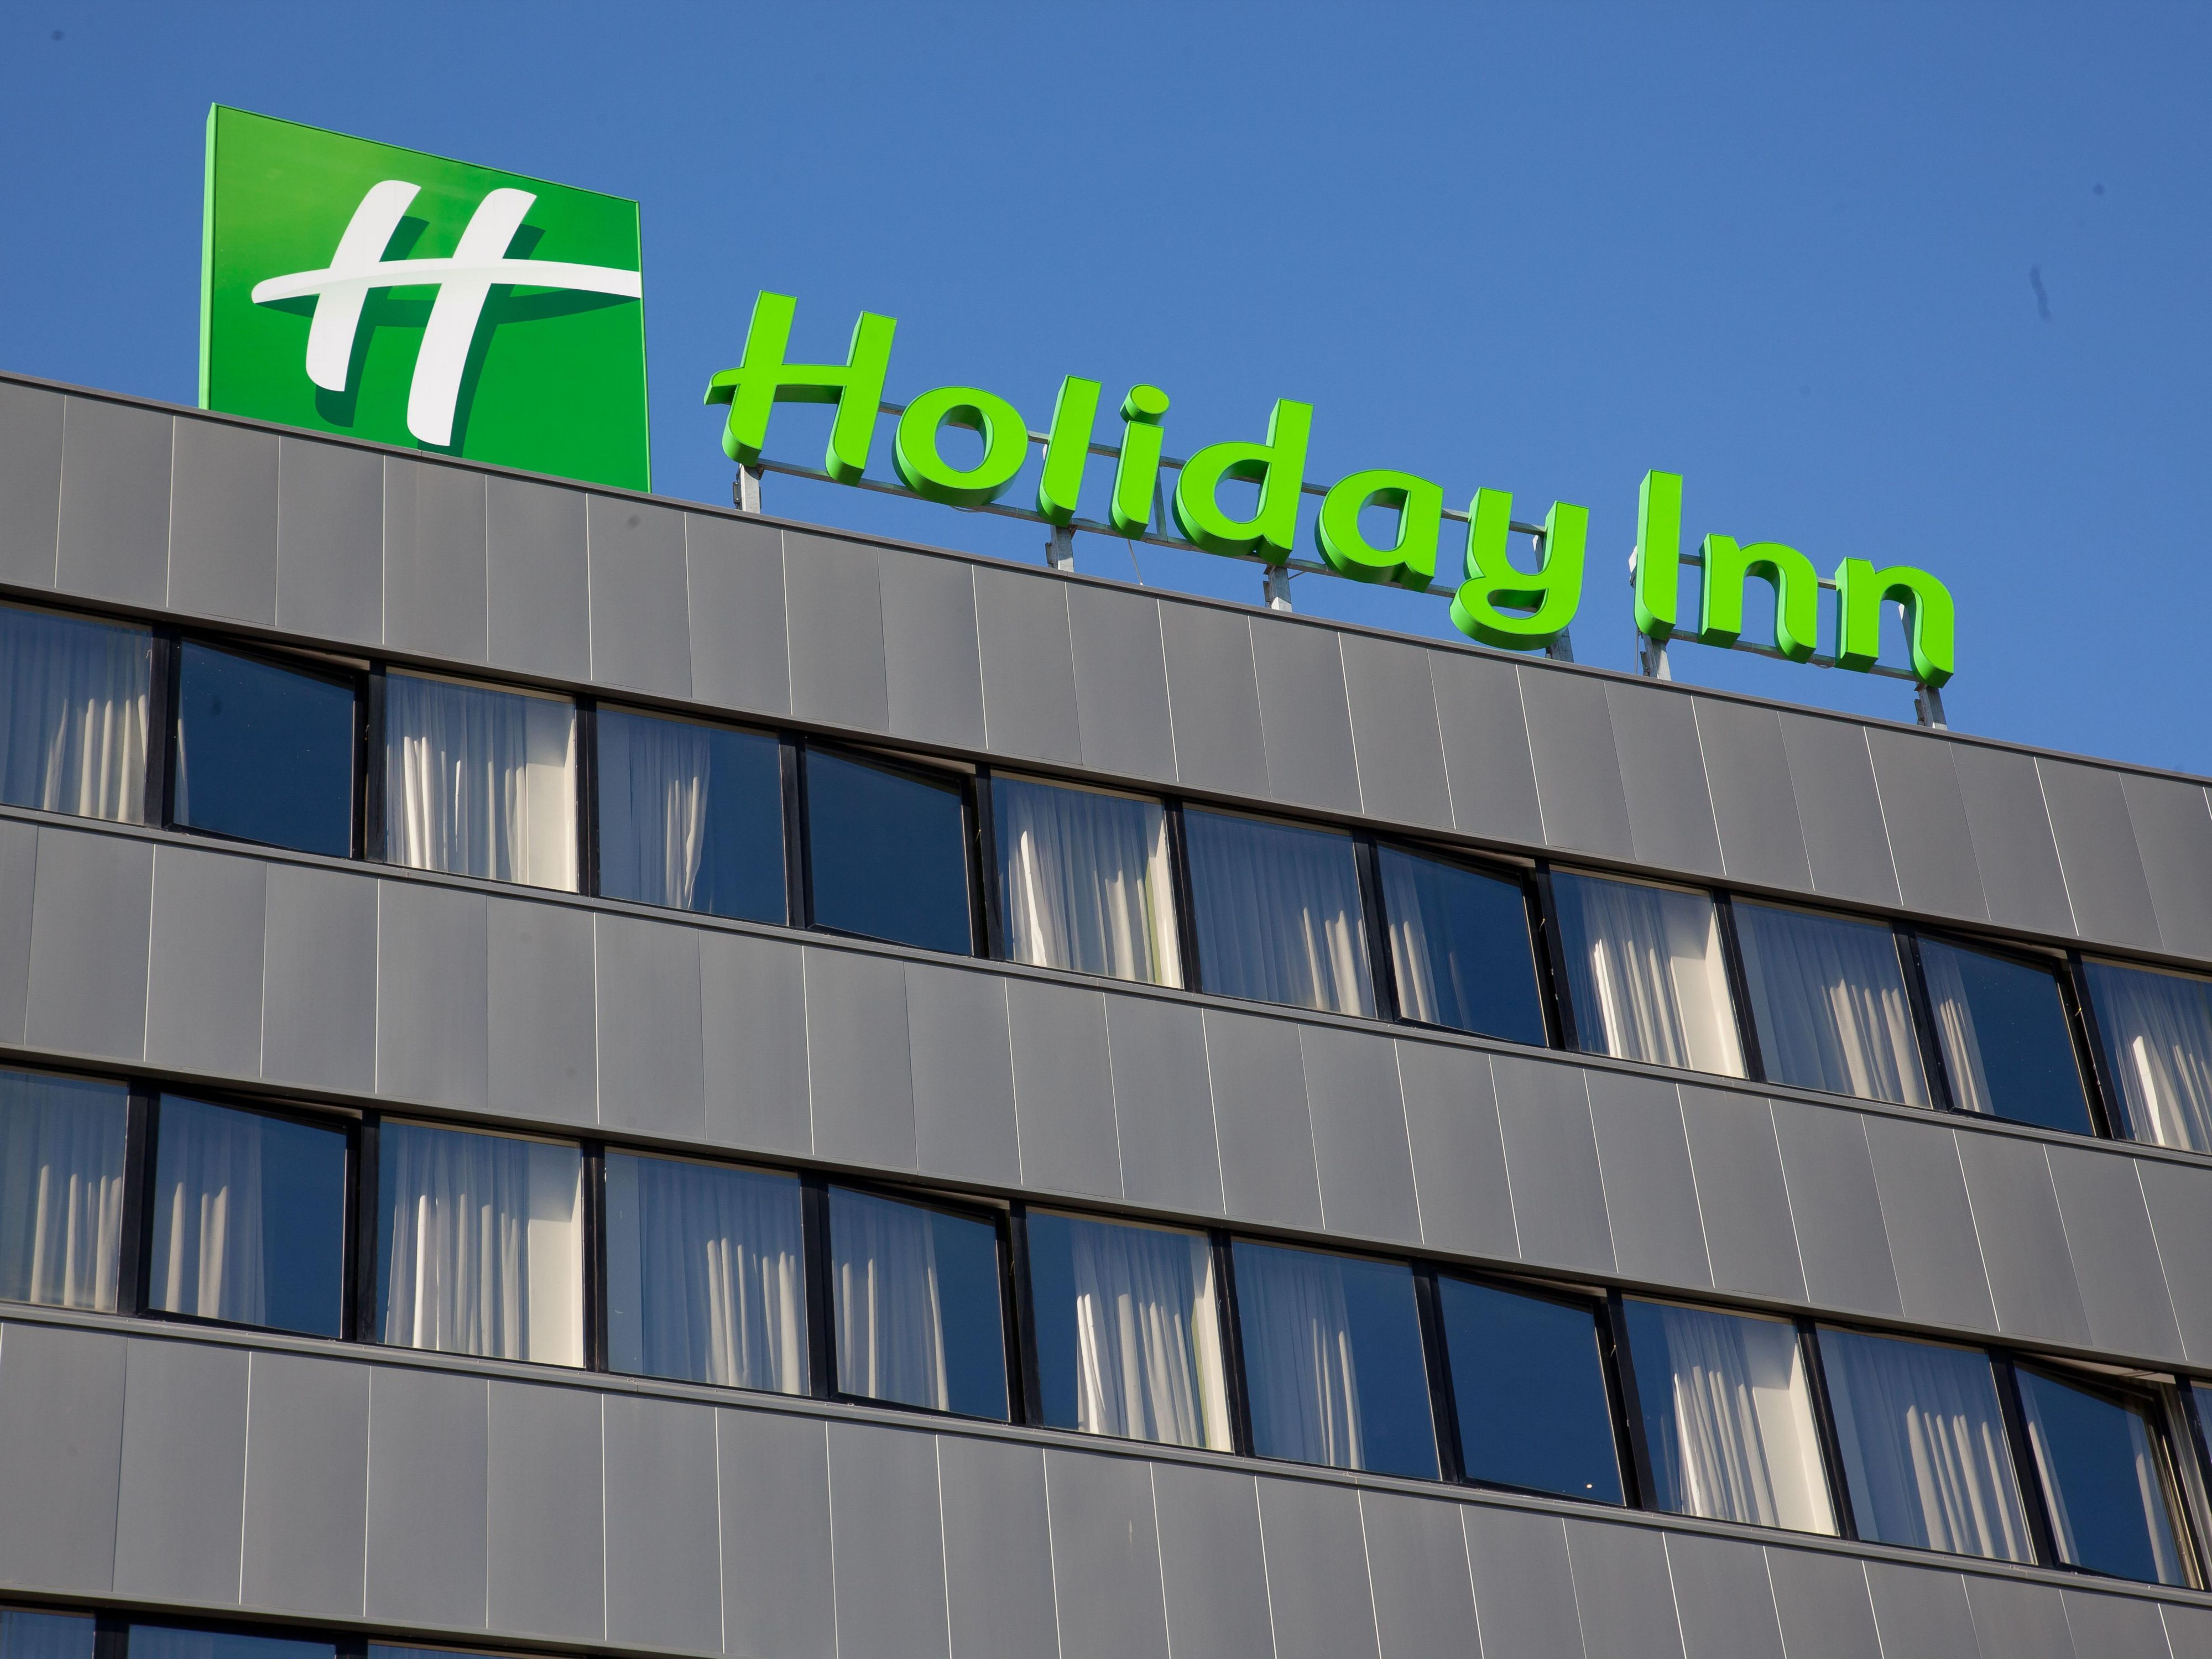 Holiday inn Rome - Pisana  Esterno